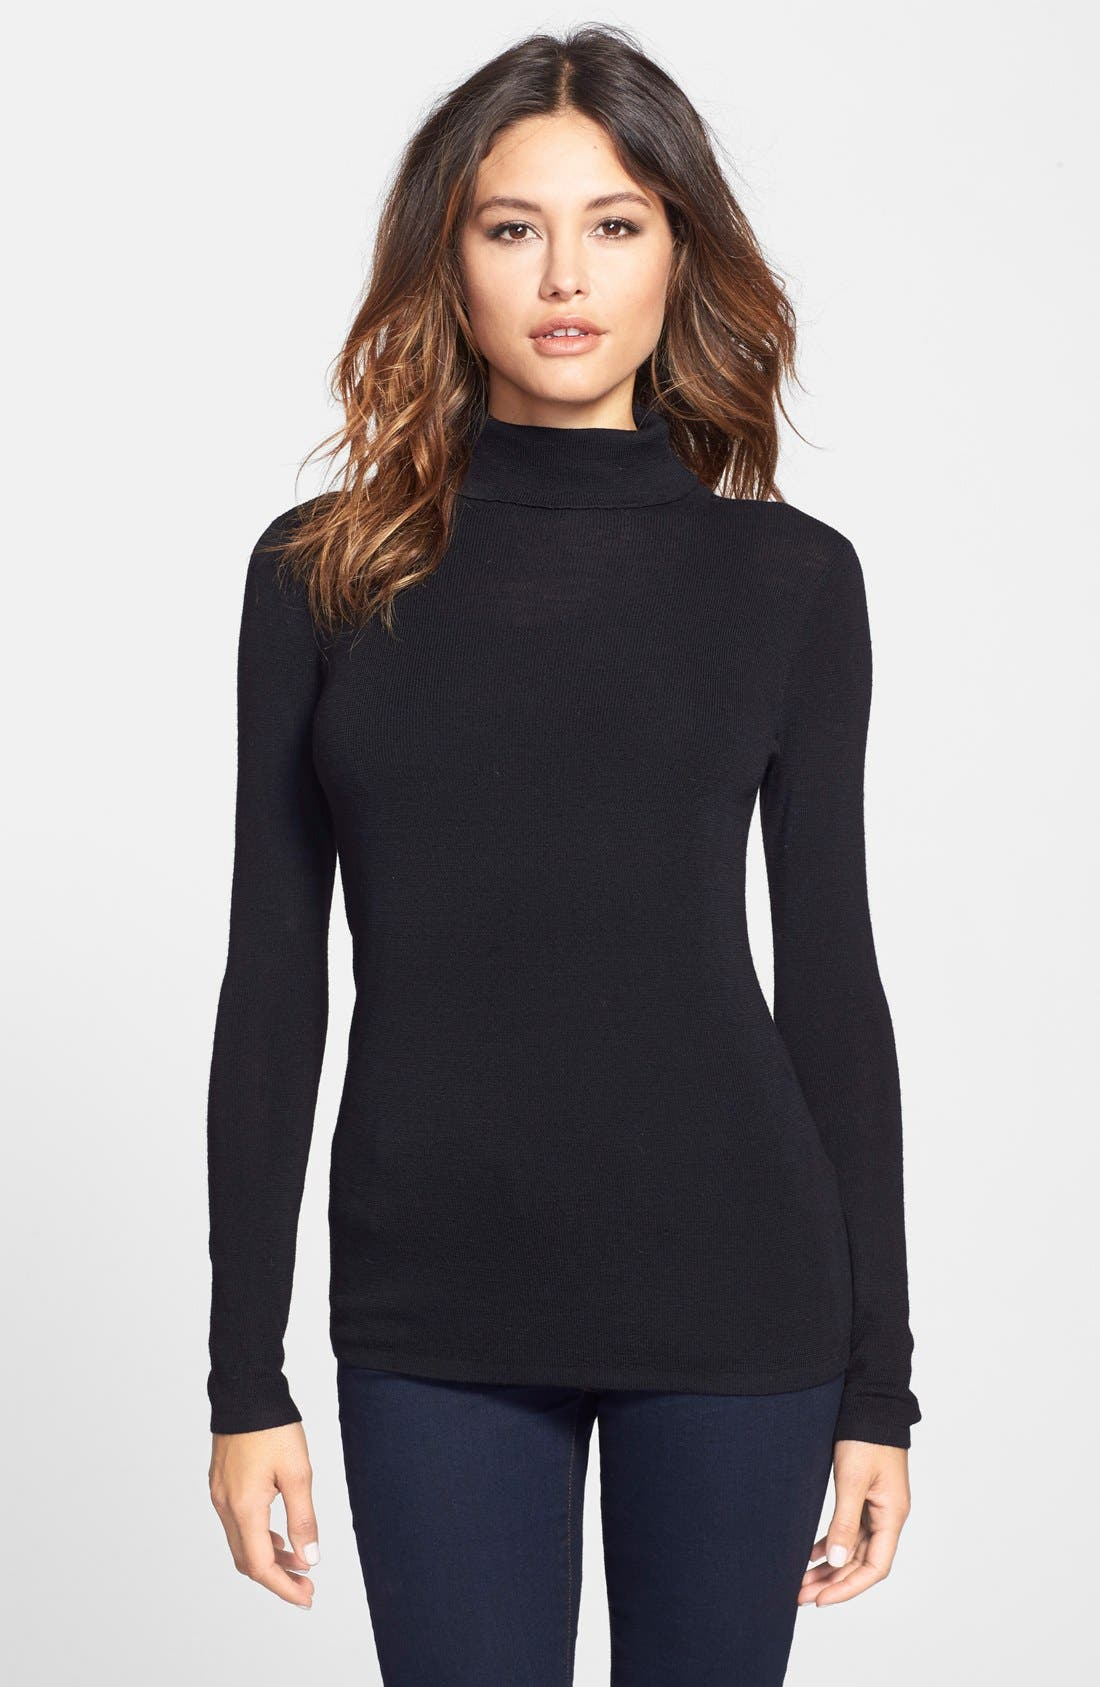 The Fisher Project Ultrafine Merino Turtleneck Sweater,                         Main,                         color,